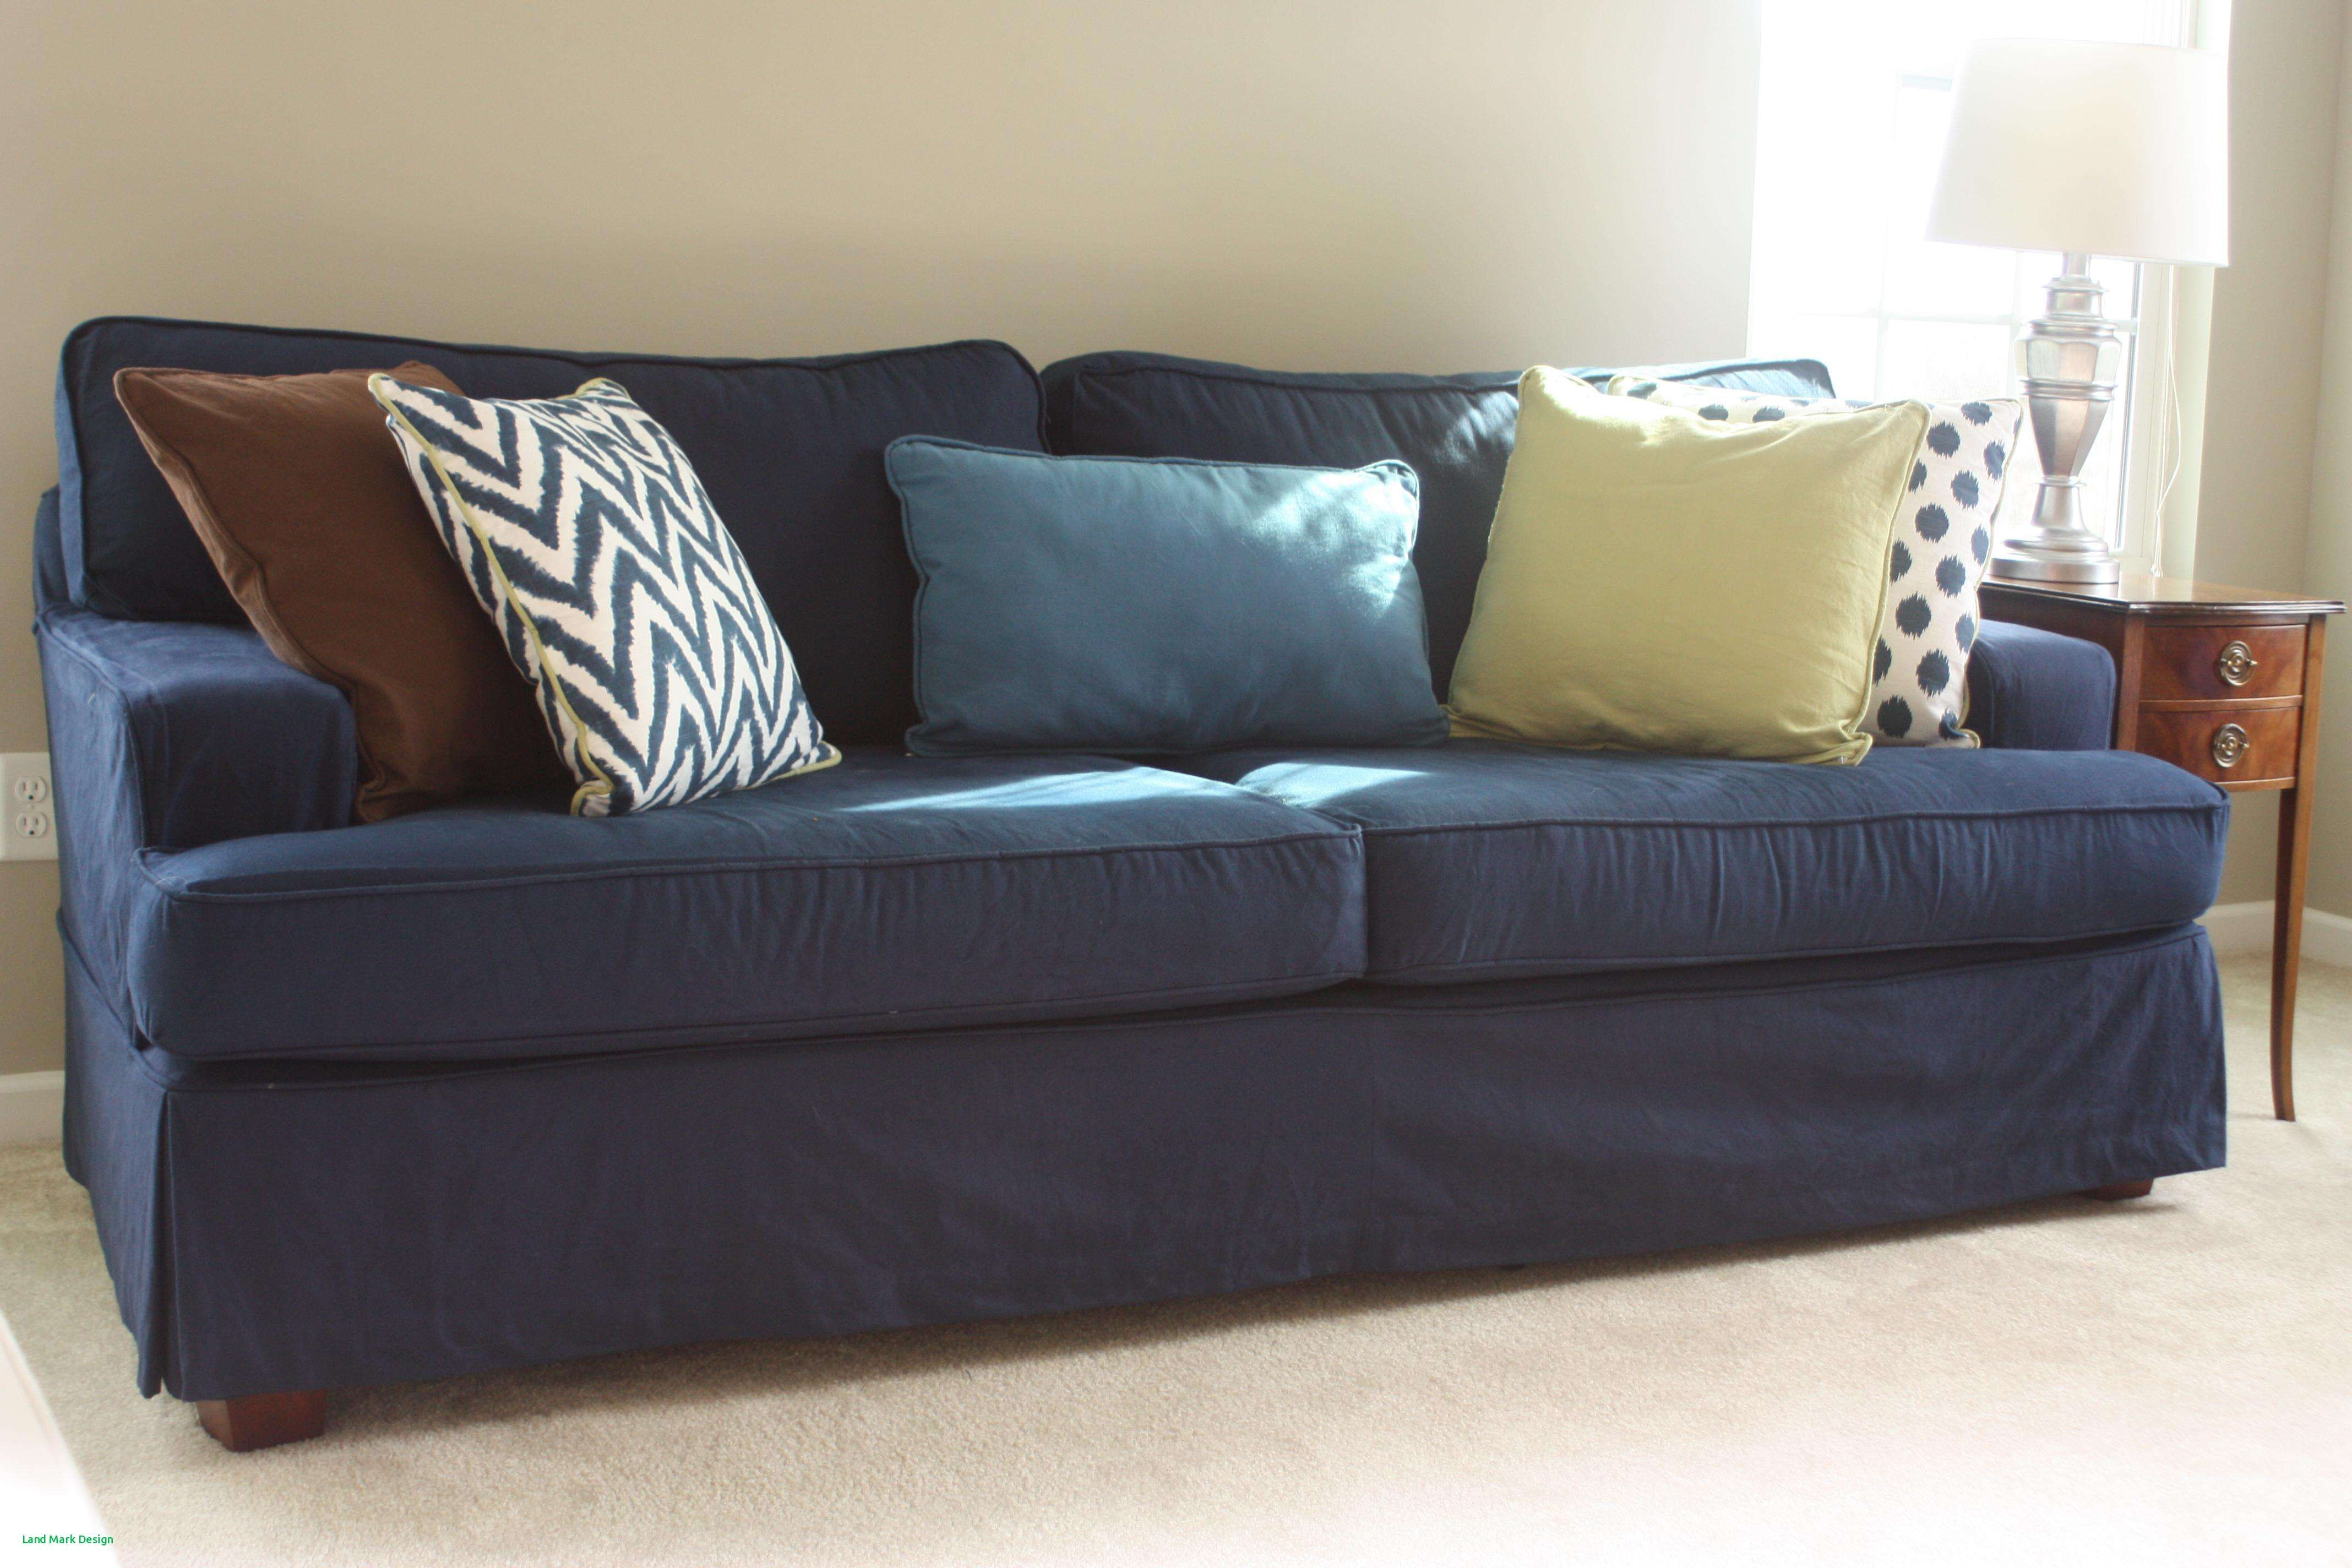 Making A Sofa Family Friendly With A Washable Slipcover